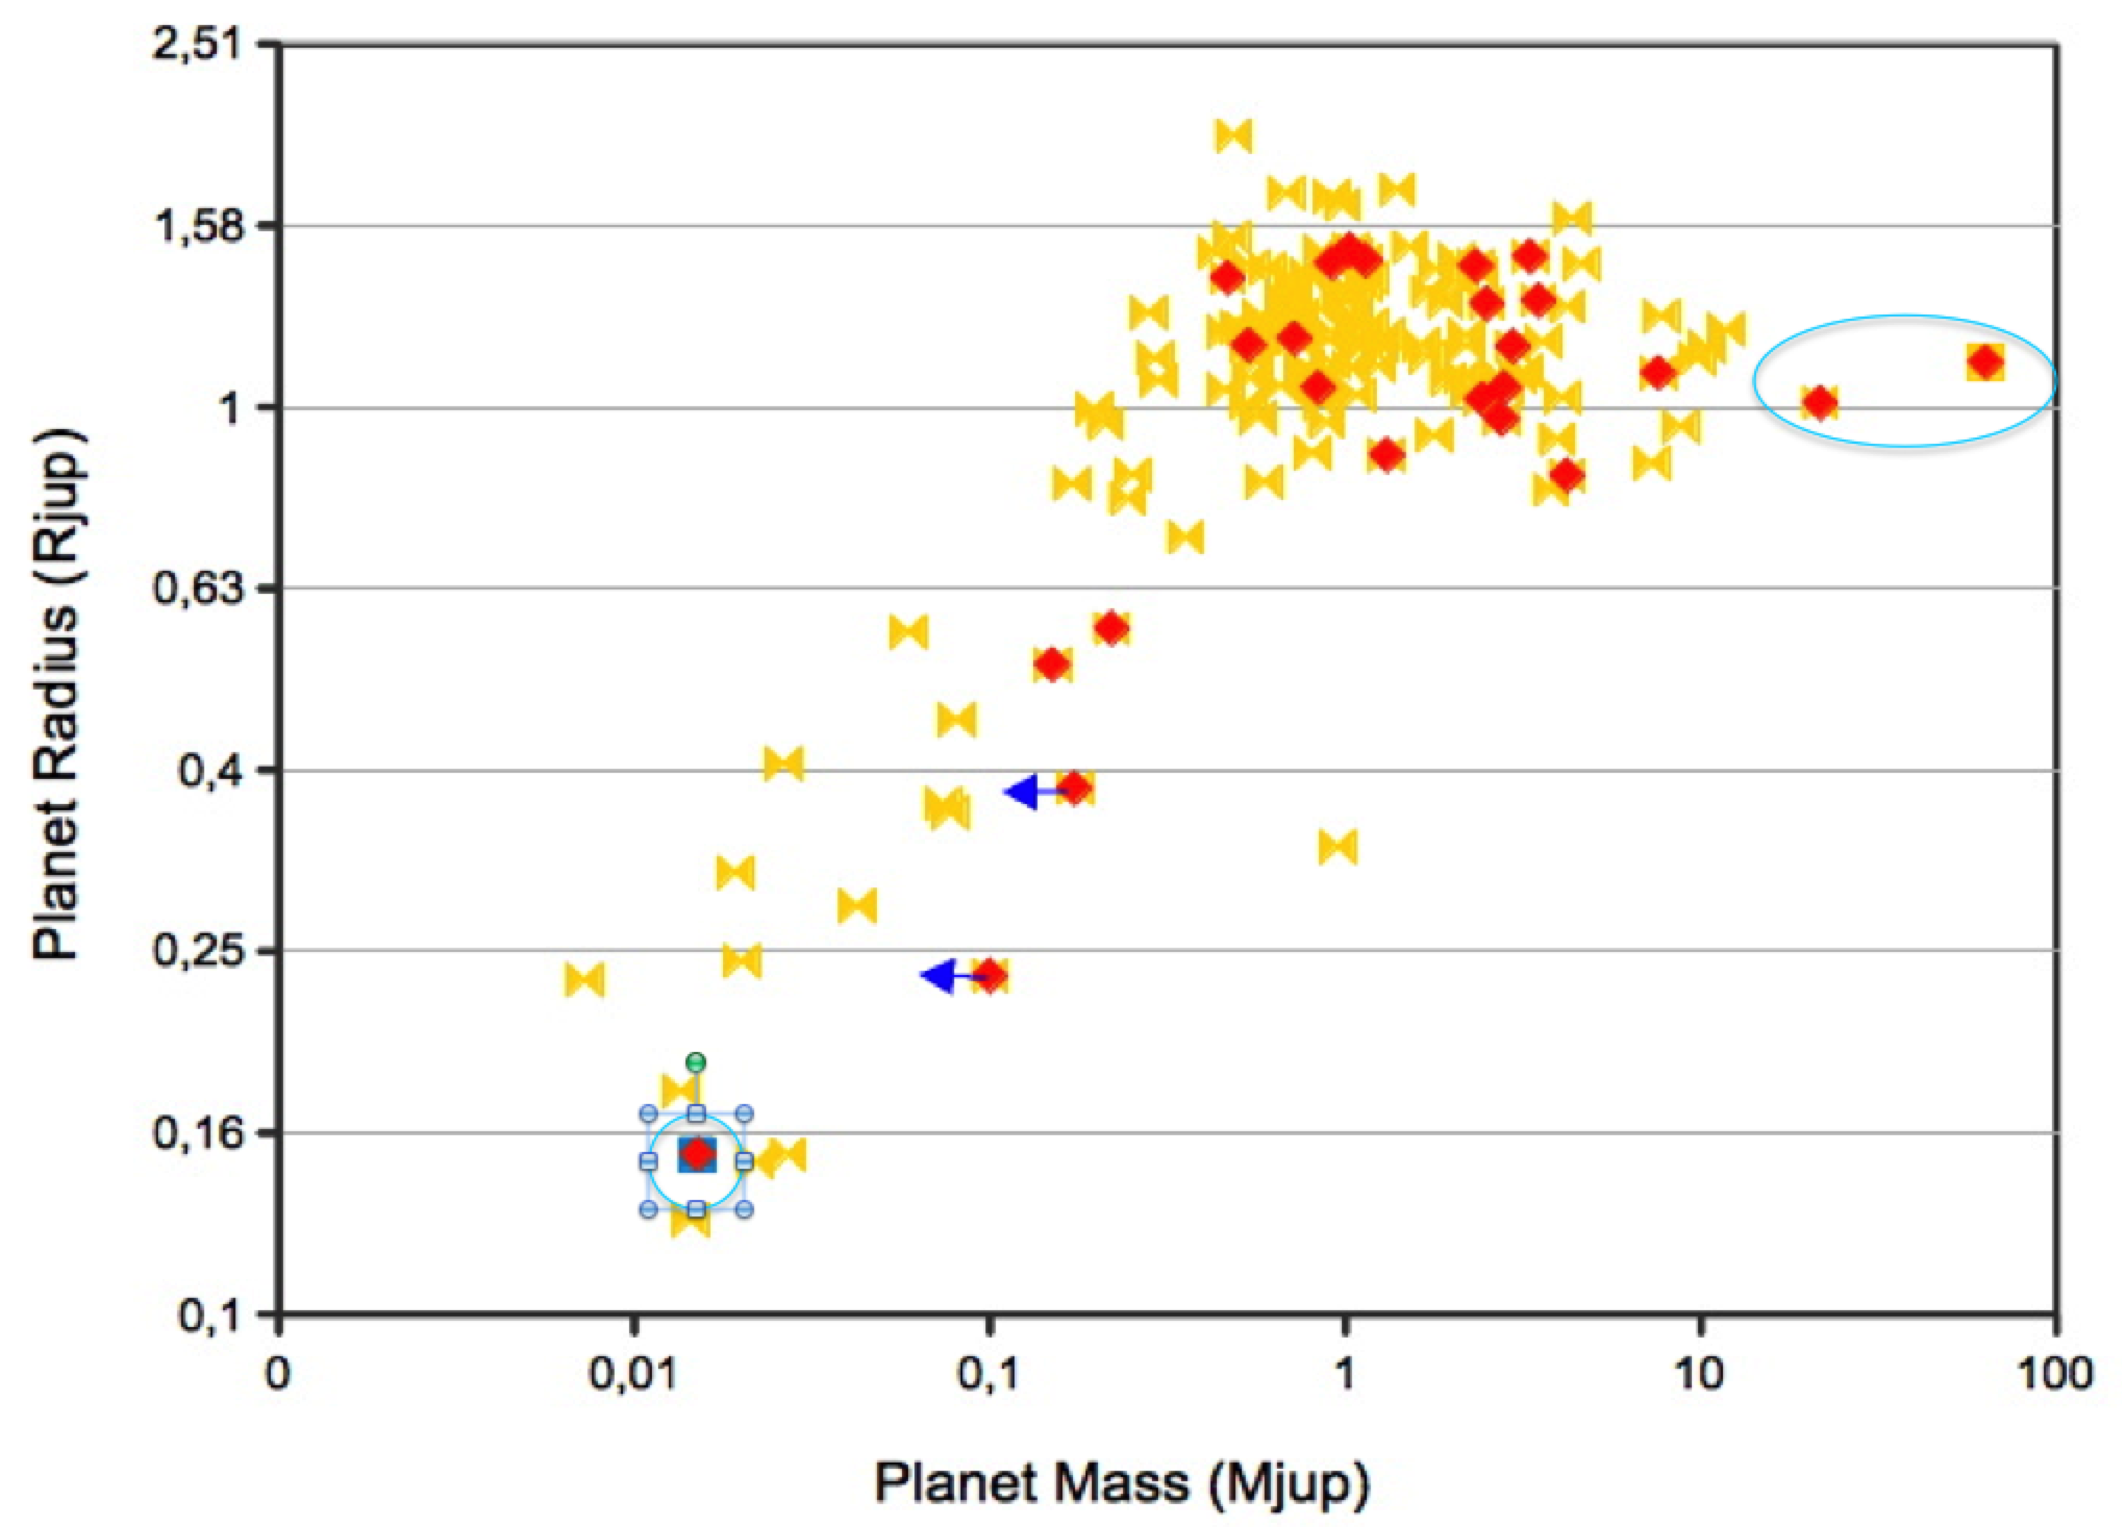 File:Corot Exoplanets on Radius vs Mass diagram.png ...